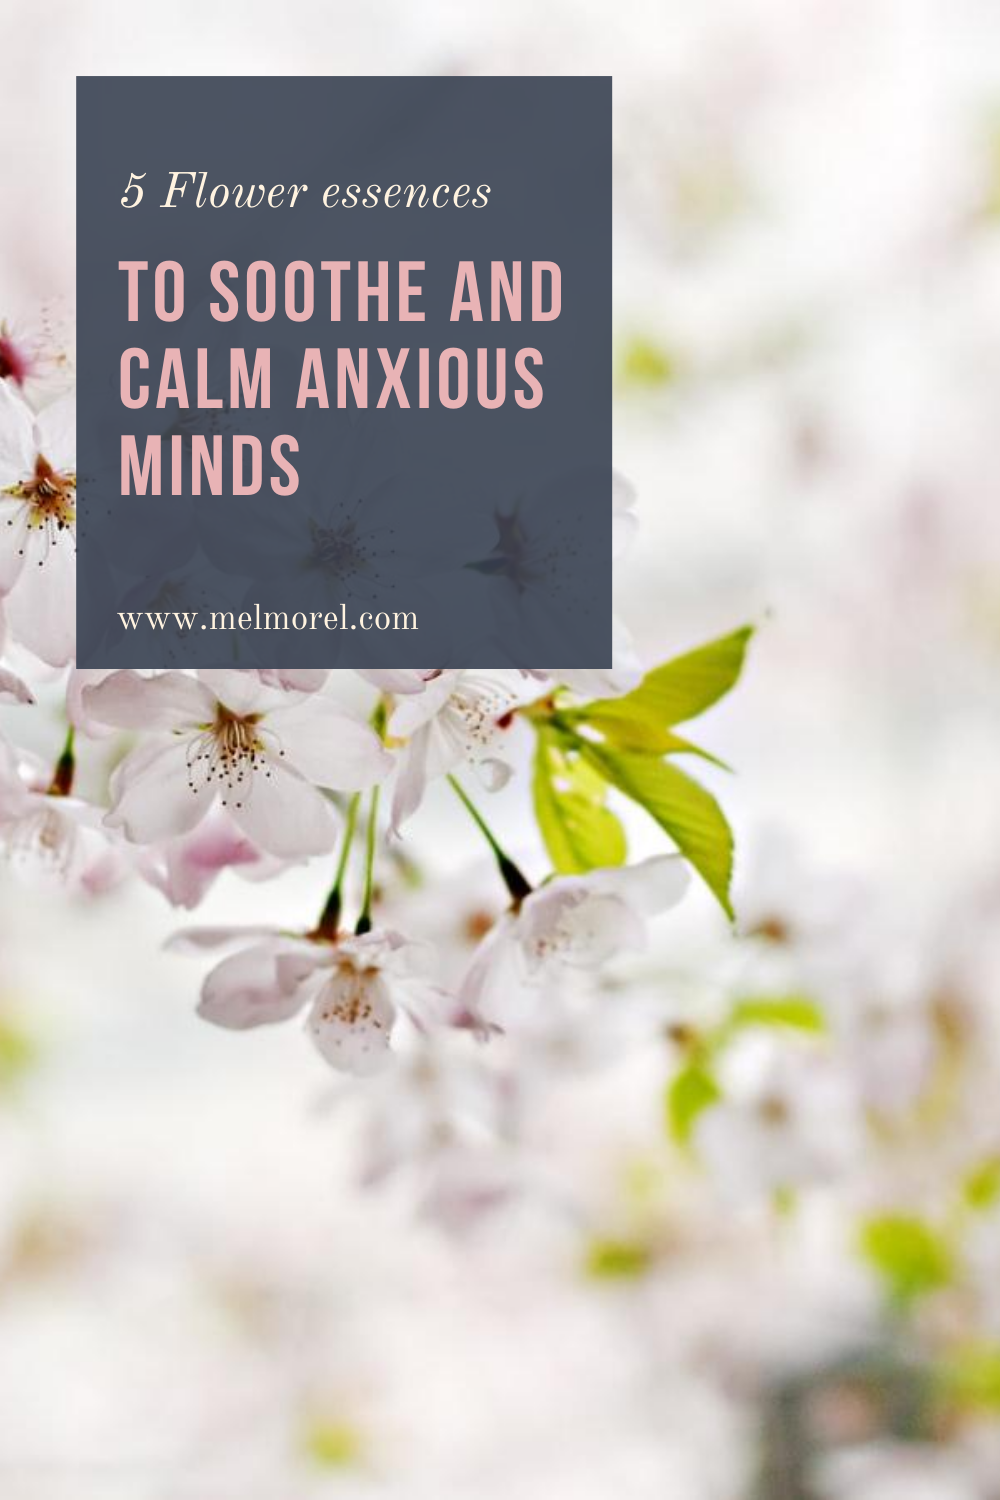 5 flower essences to soothe and calm anxious mind